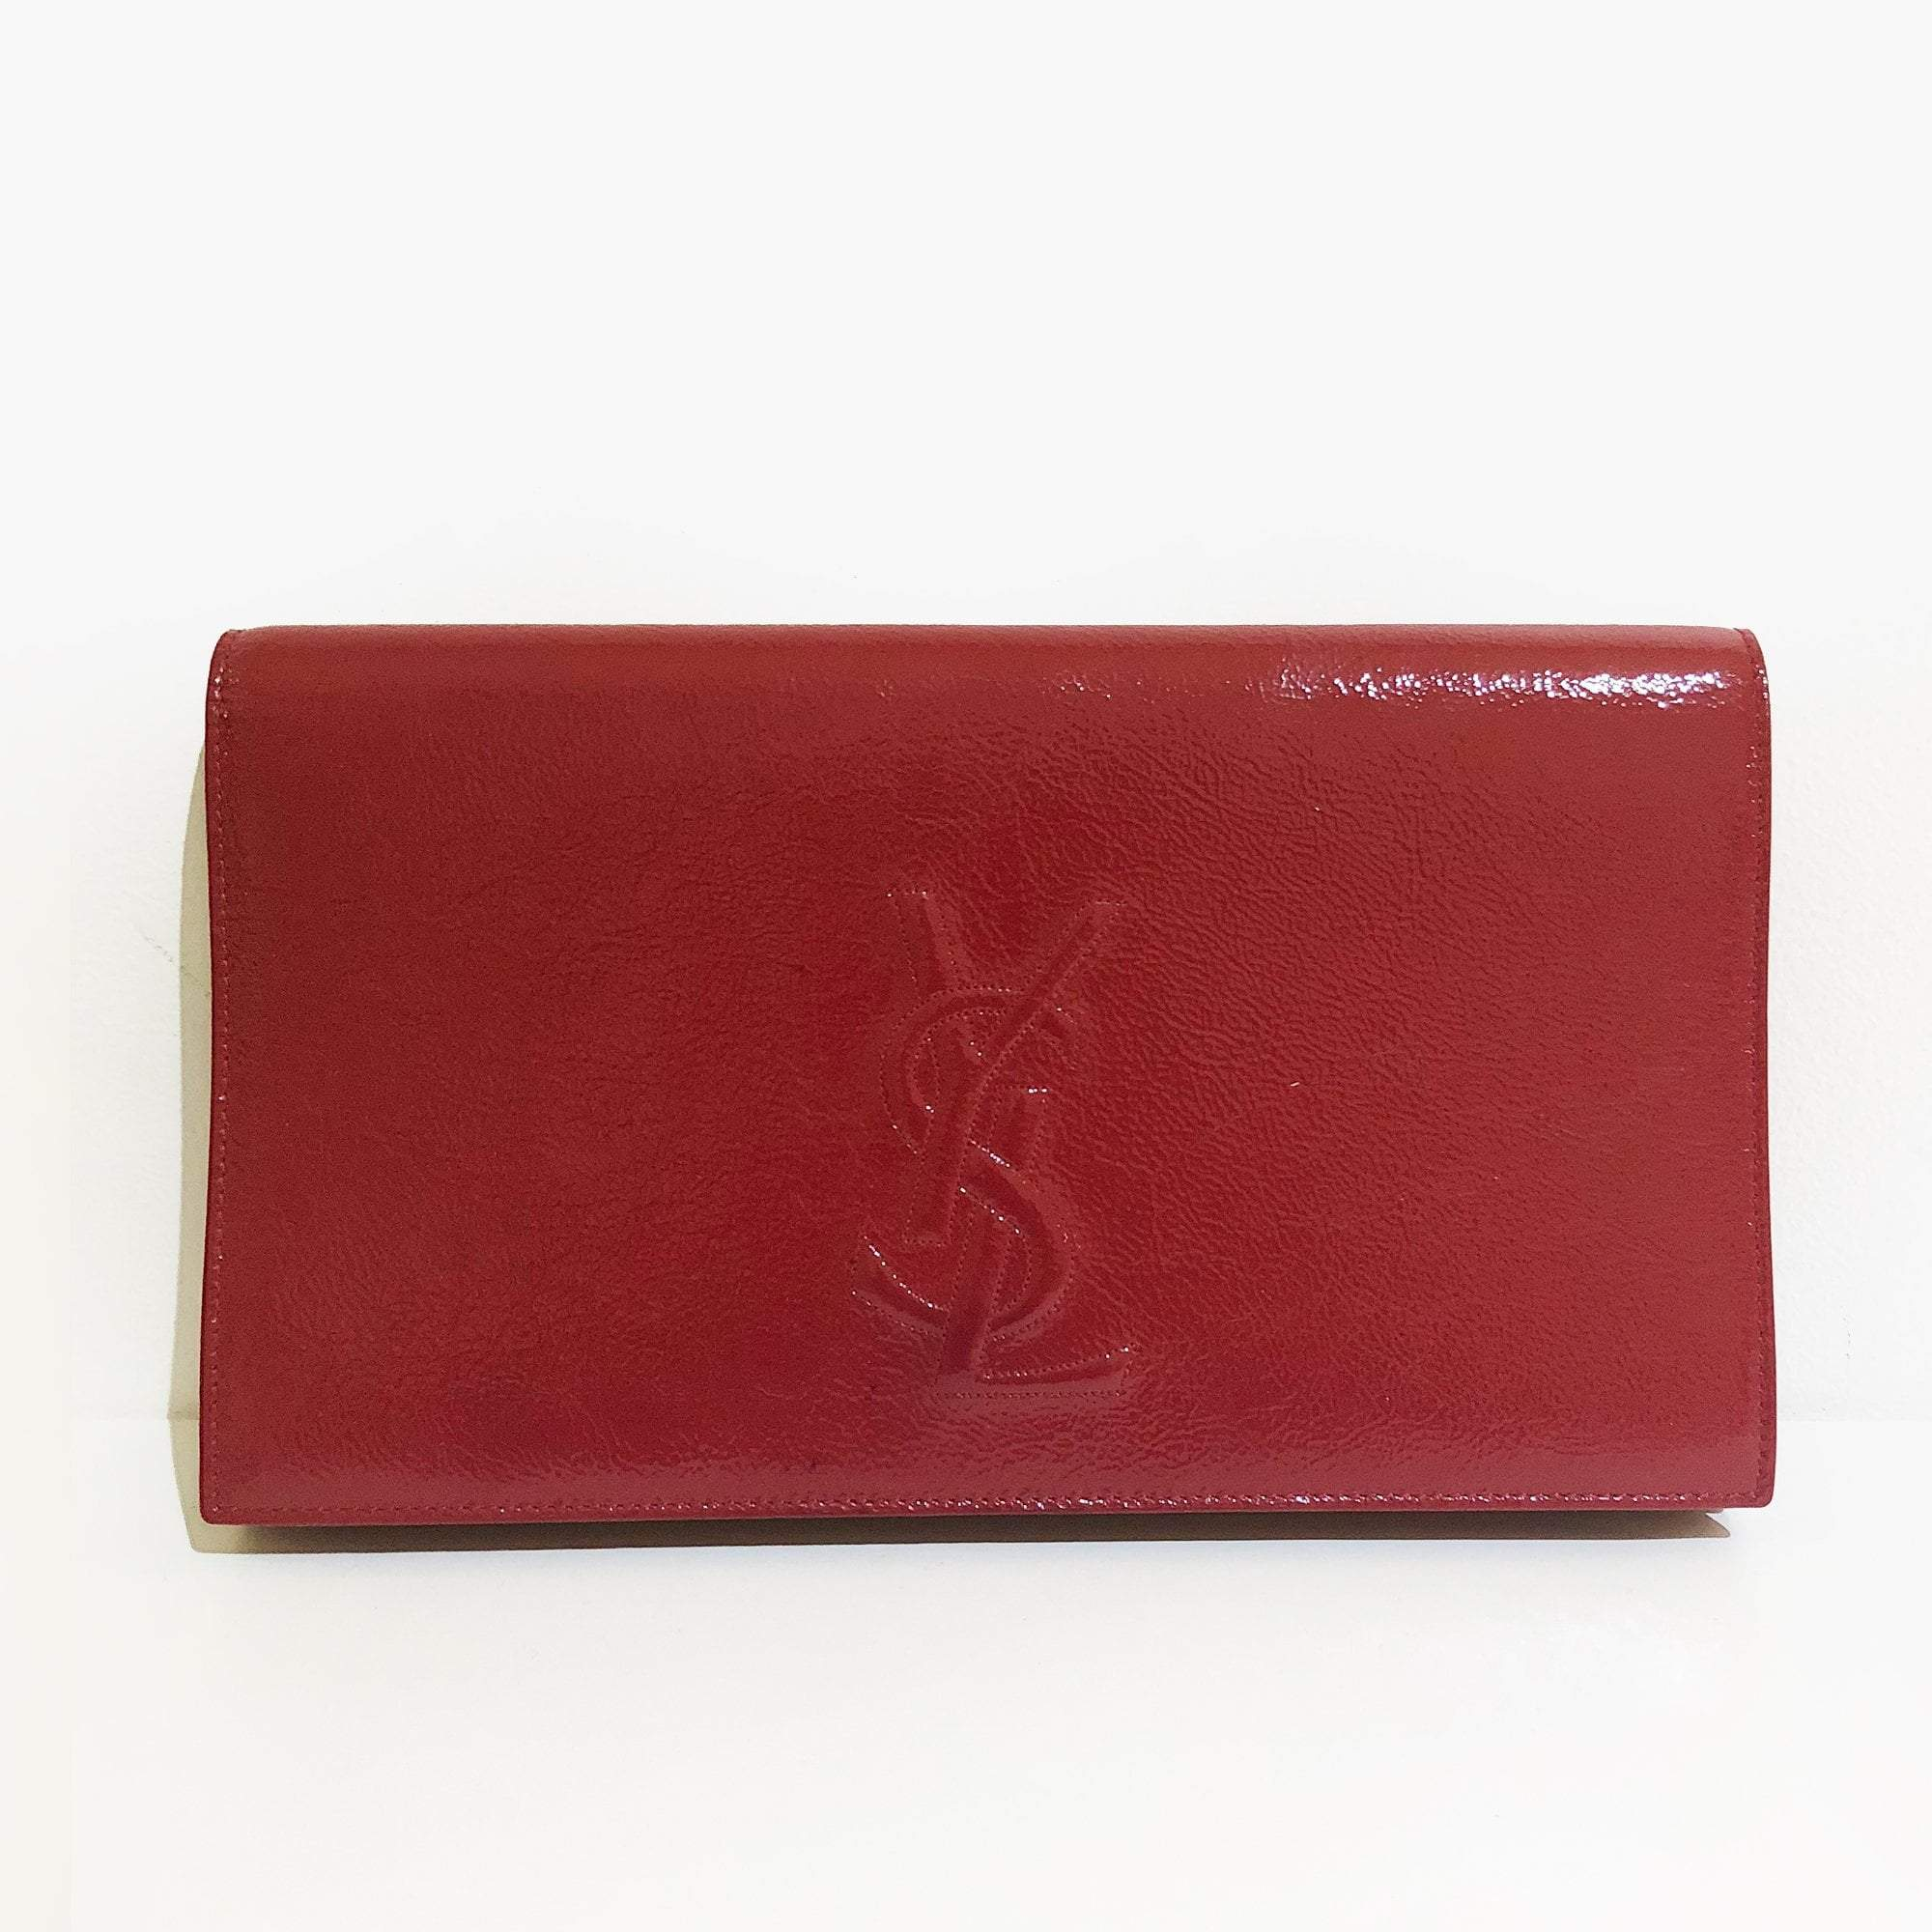 Saint Laurent Sac De Jour Red Clutch